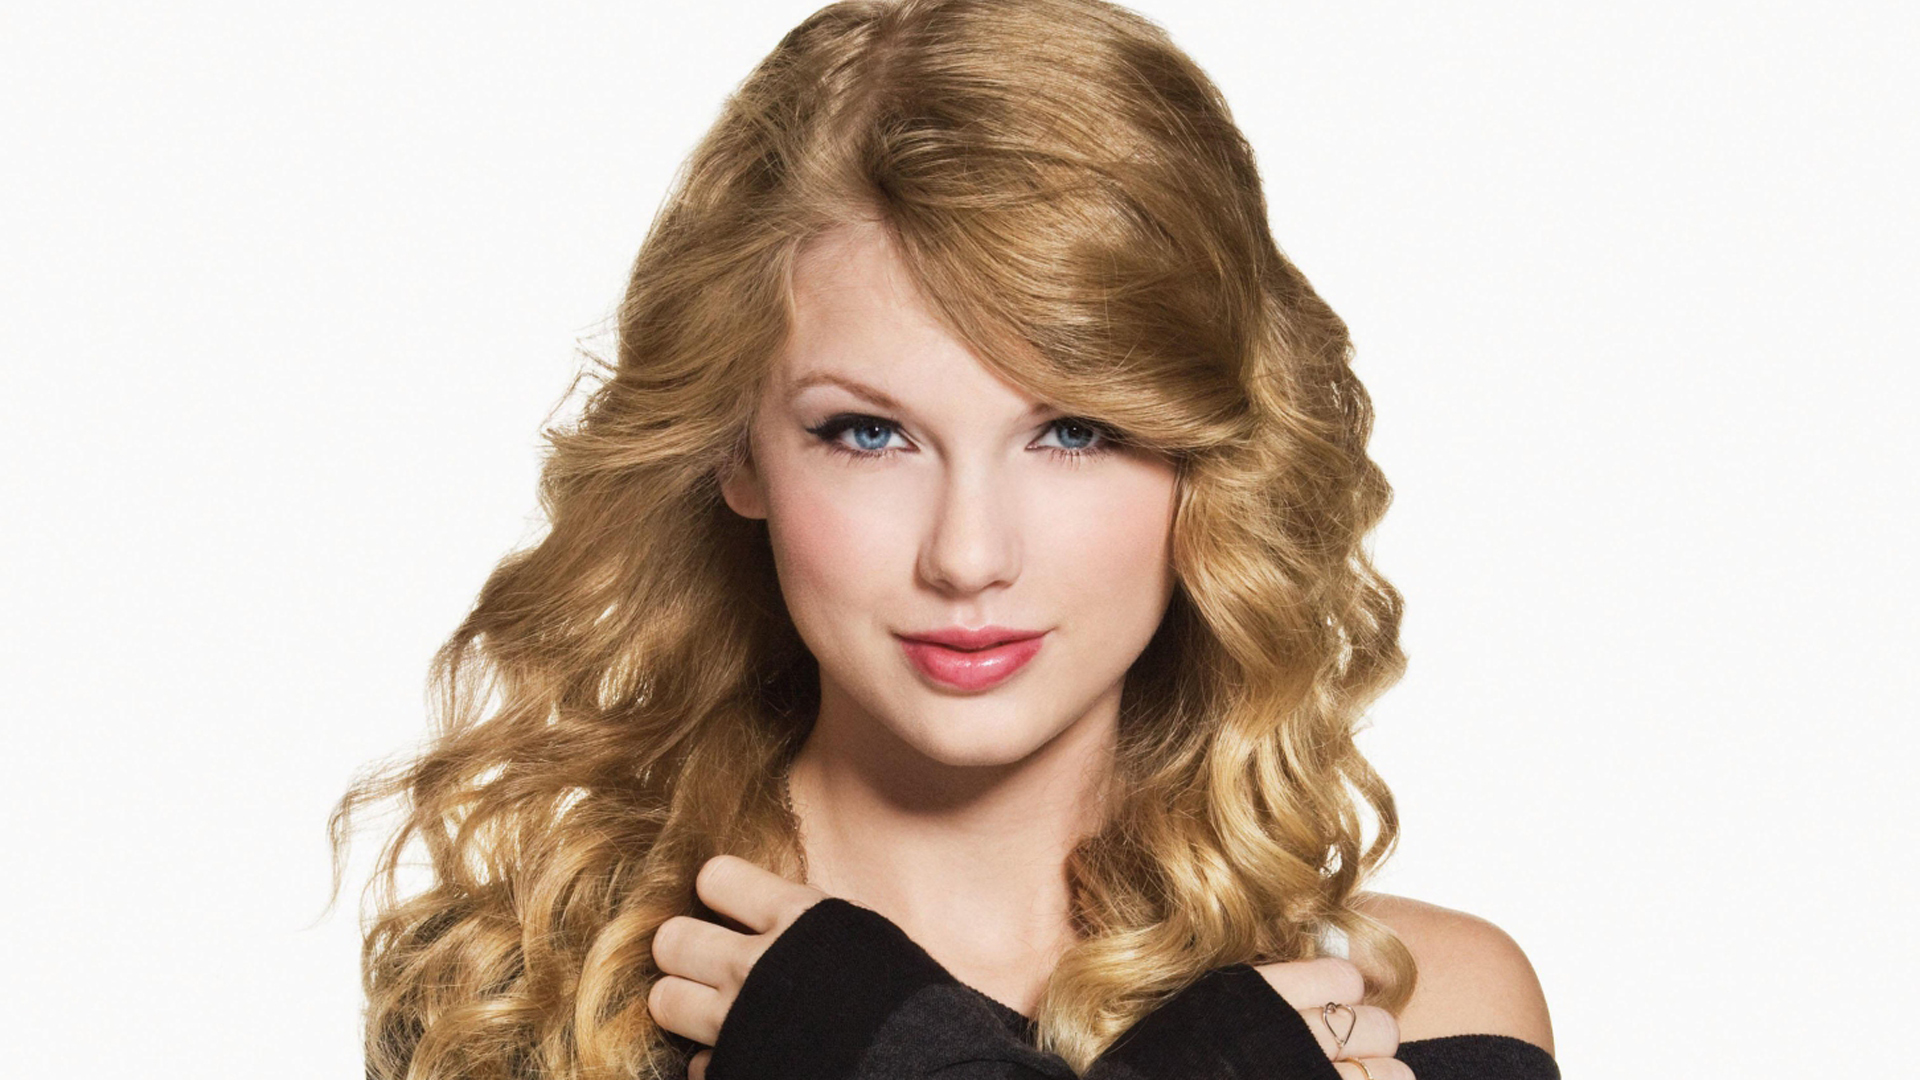 Taylor Swift Wallpaper Collection For Download 1920x1080